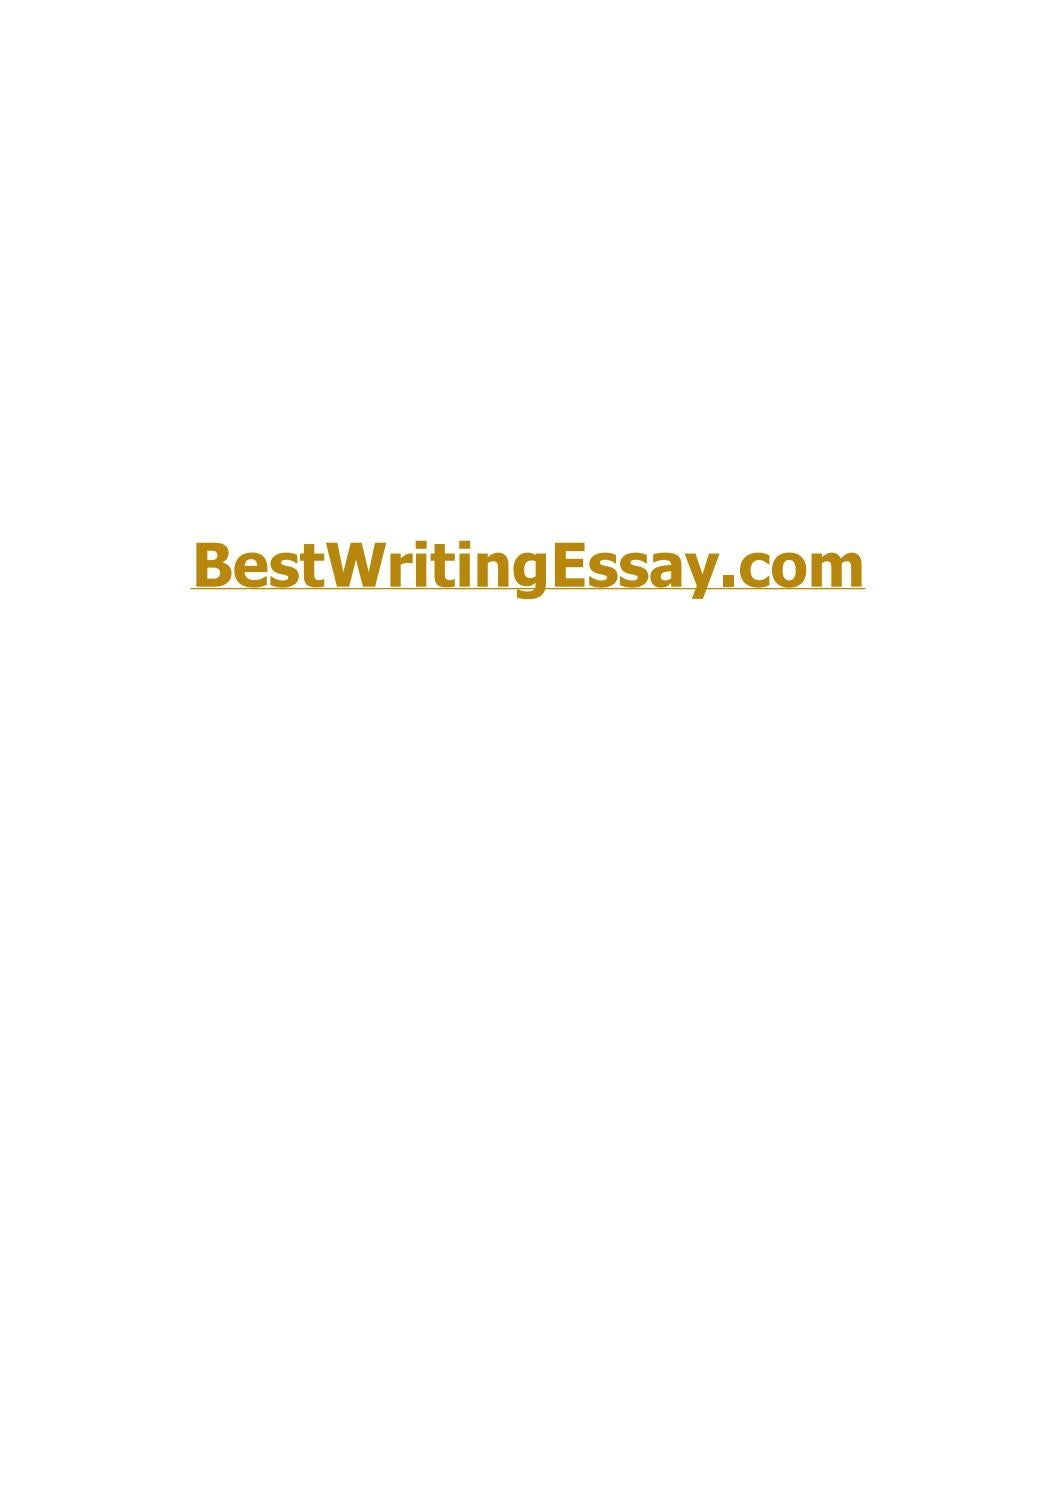 Examples Of Persuasive Essays For High School  Help With Essay Papers also How To Write A Proposal Essay Paper Good Money Management Essay By Danielgzuv  Issuu How To Write An Essay For High School